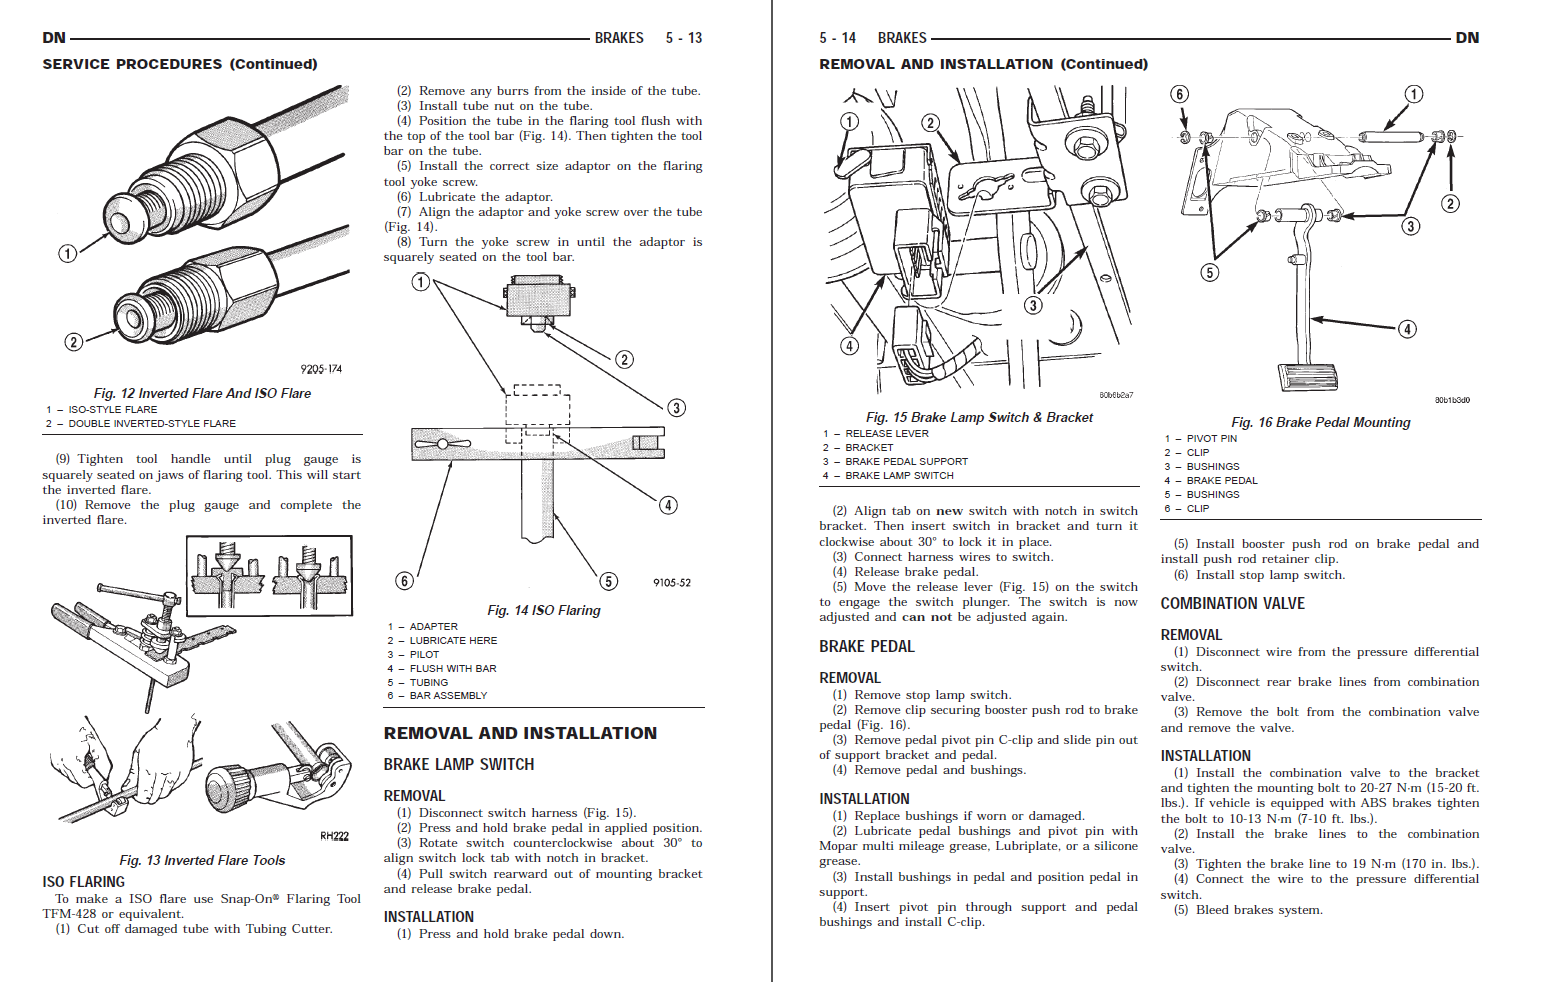 Dodge dakota manual transmission wiring diagram